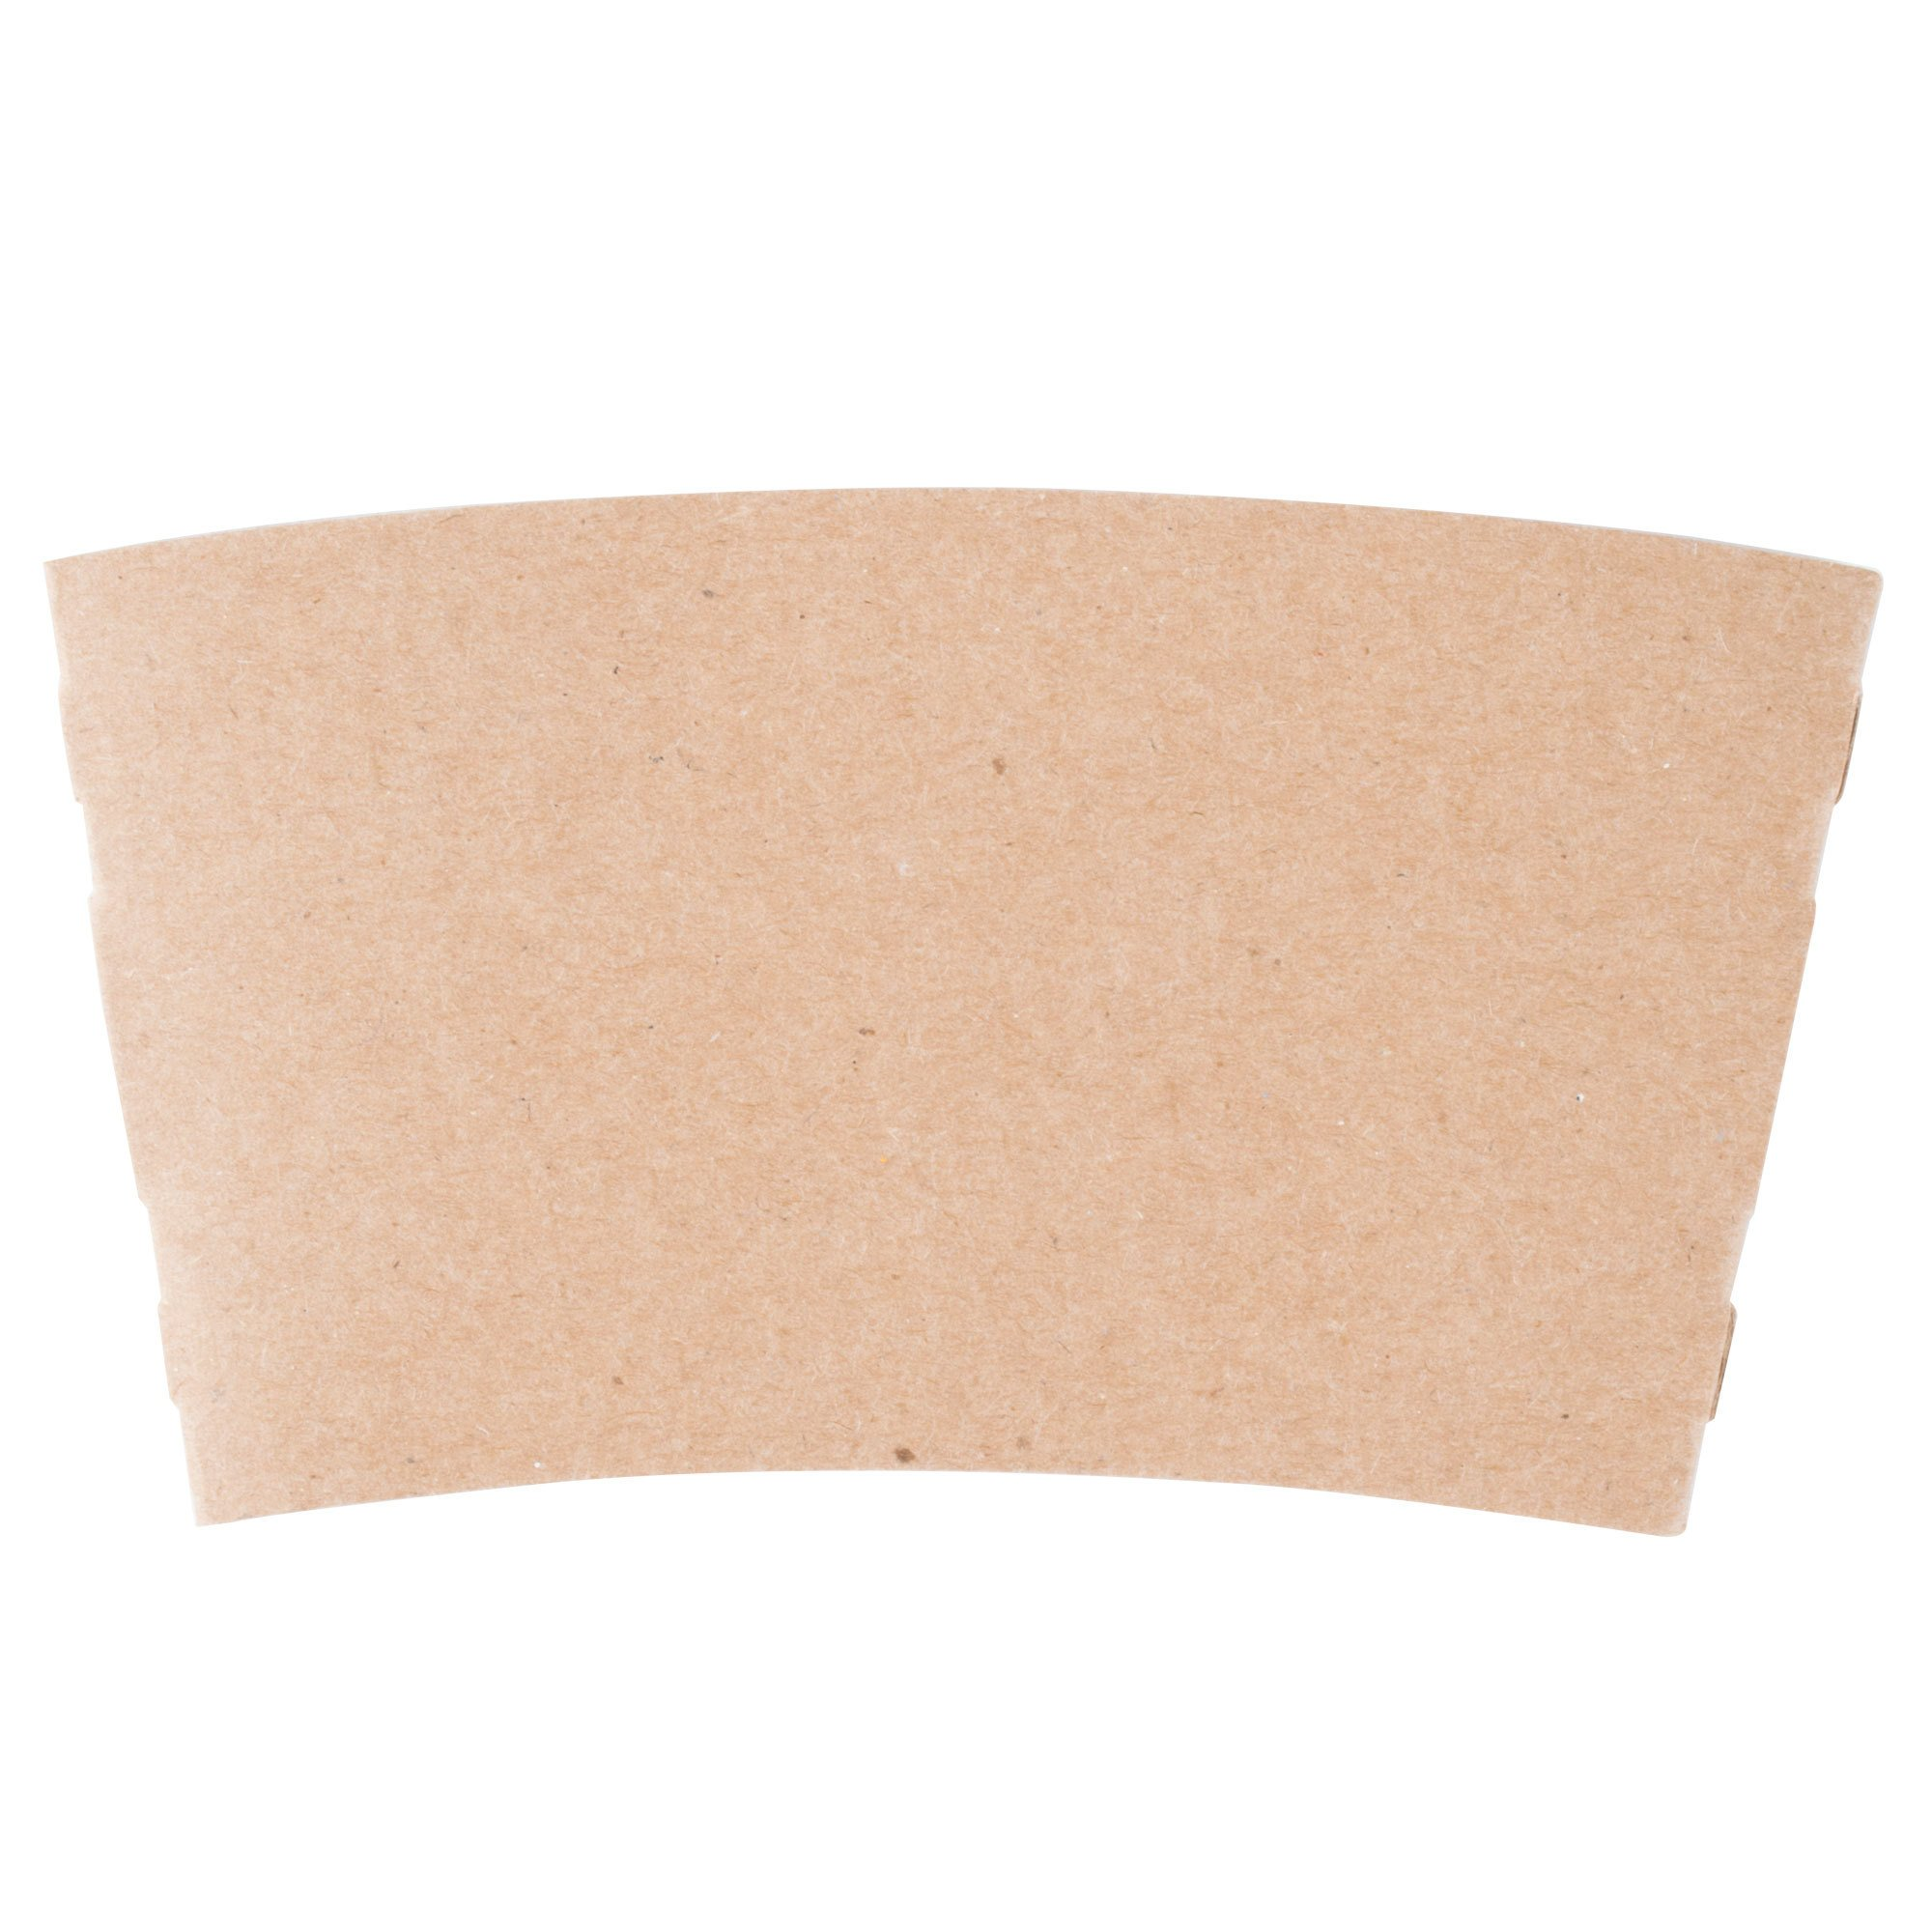 10 oz. Natural Kraft Customizable Coffee Cup Sleeve - 1500/Case